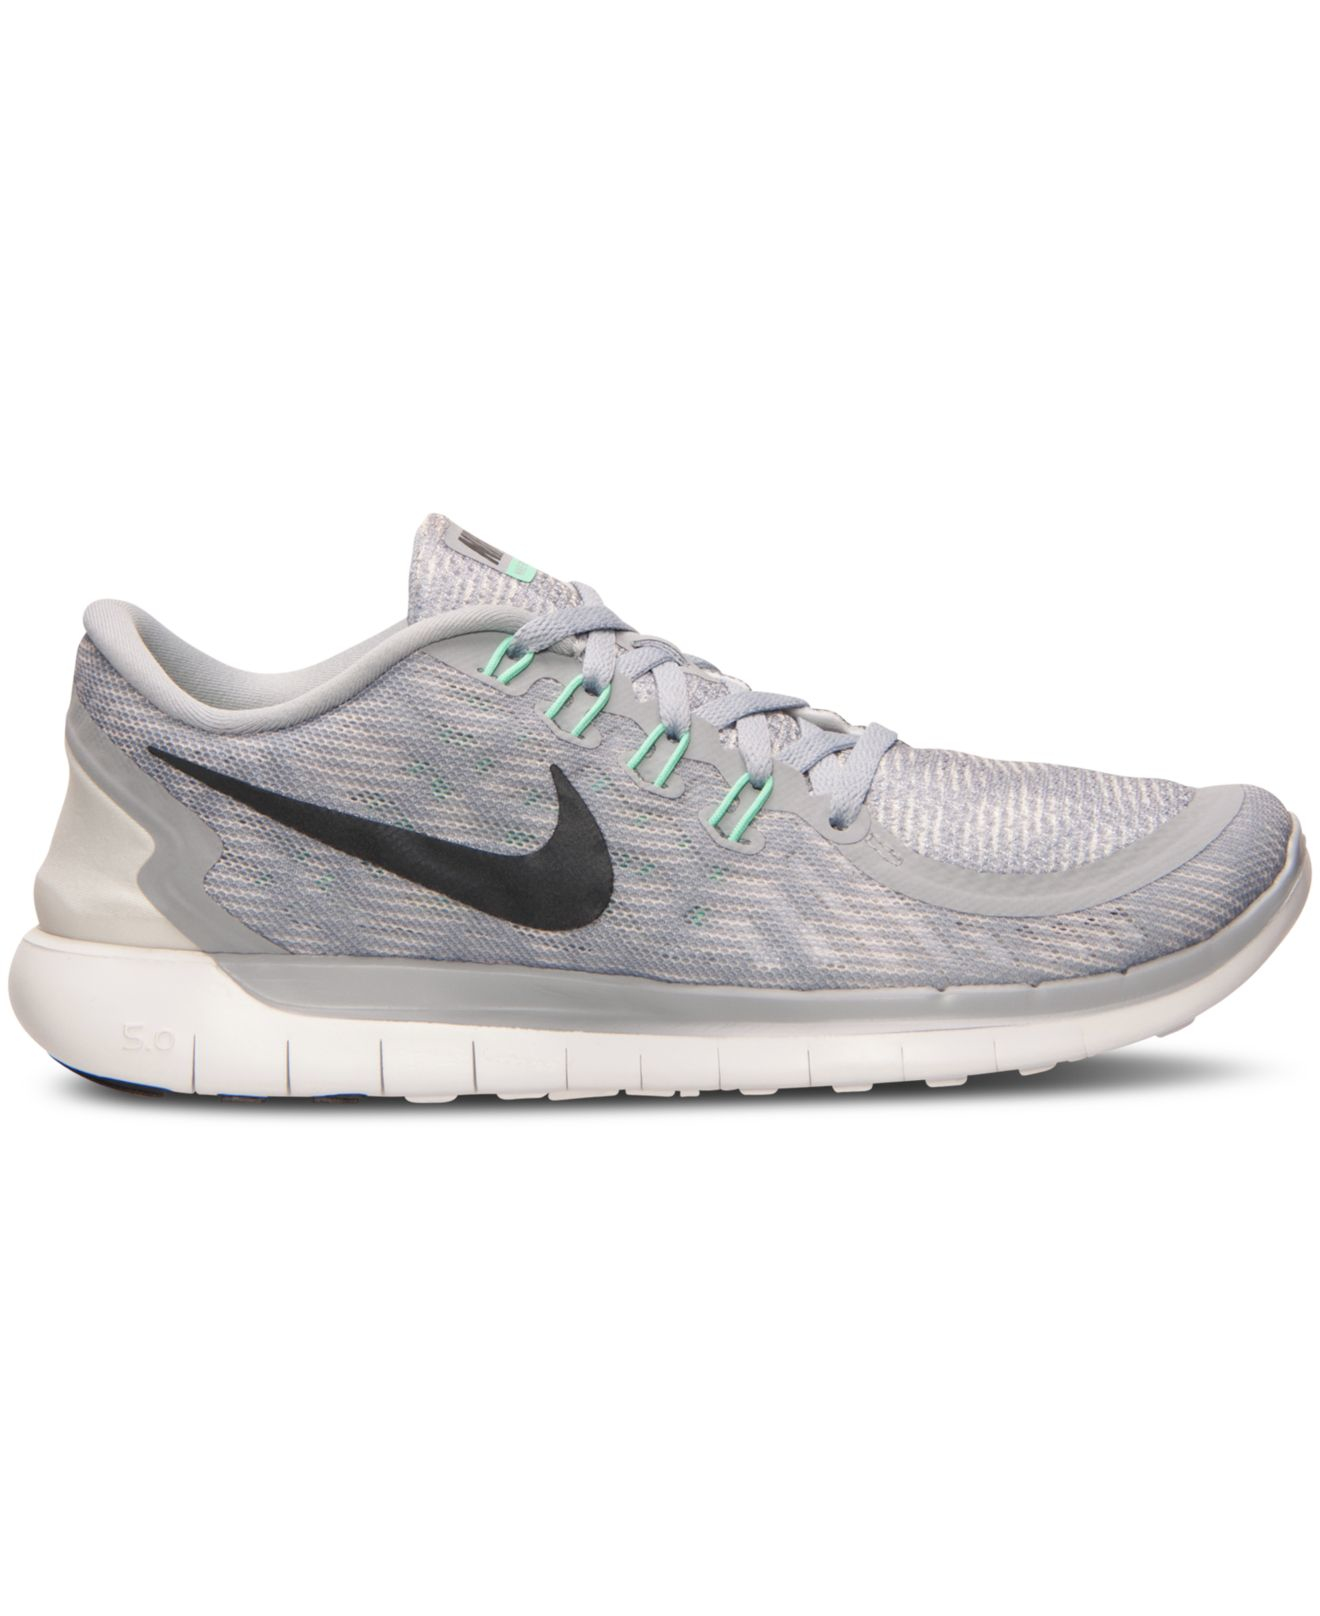 differently 4aba9 ede49 Lyst - Nike Women s Free 5.0 Print Running Sneakers From Finish Line ...